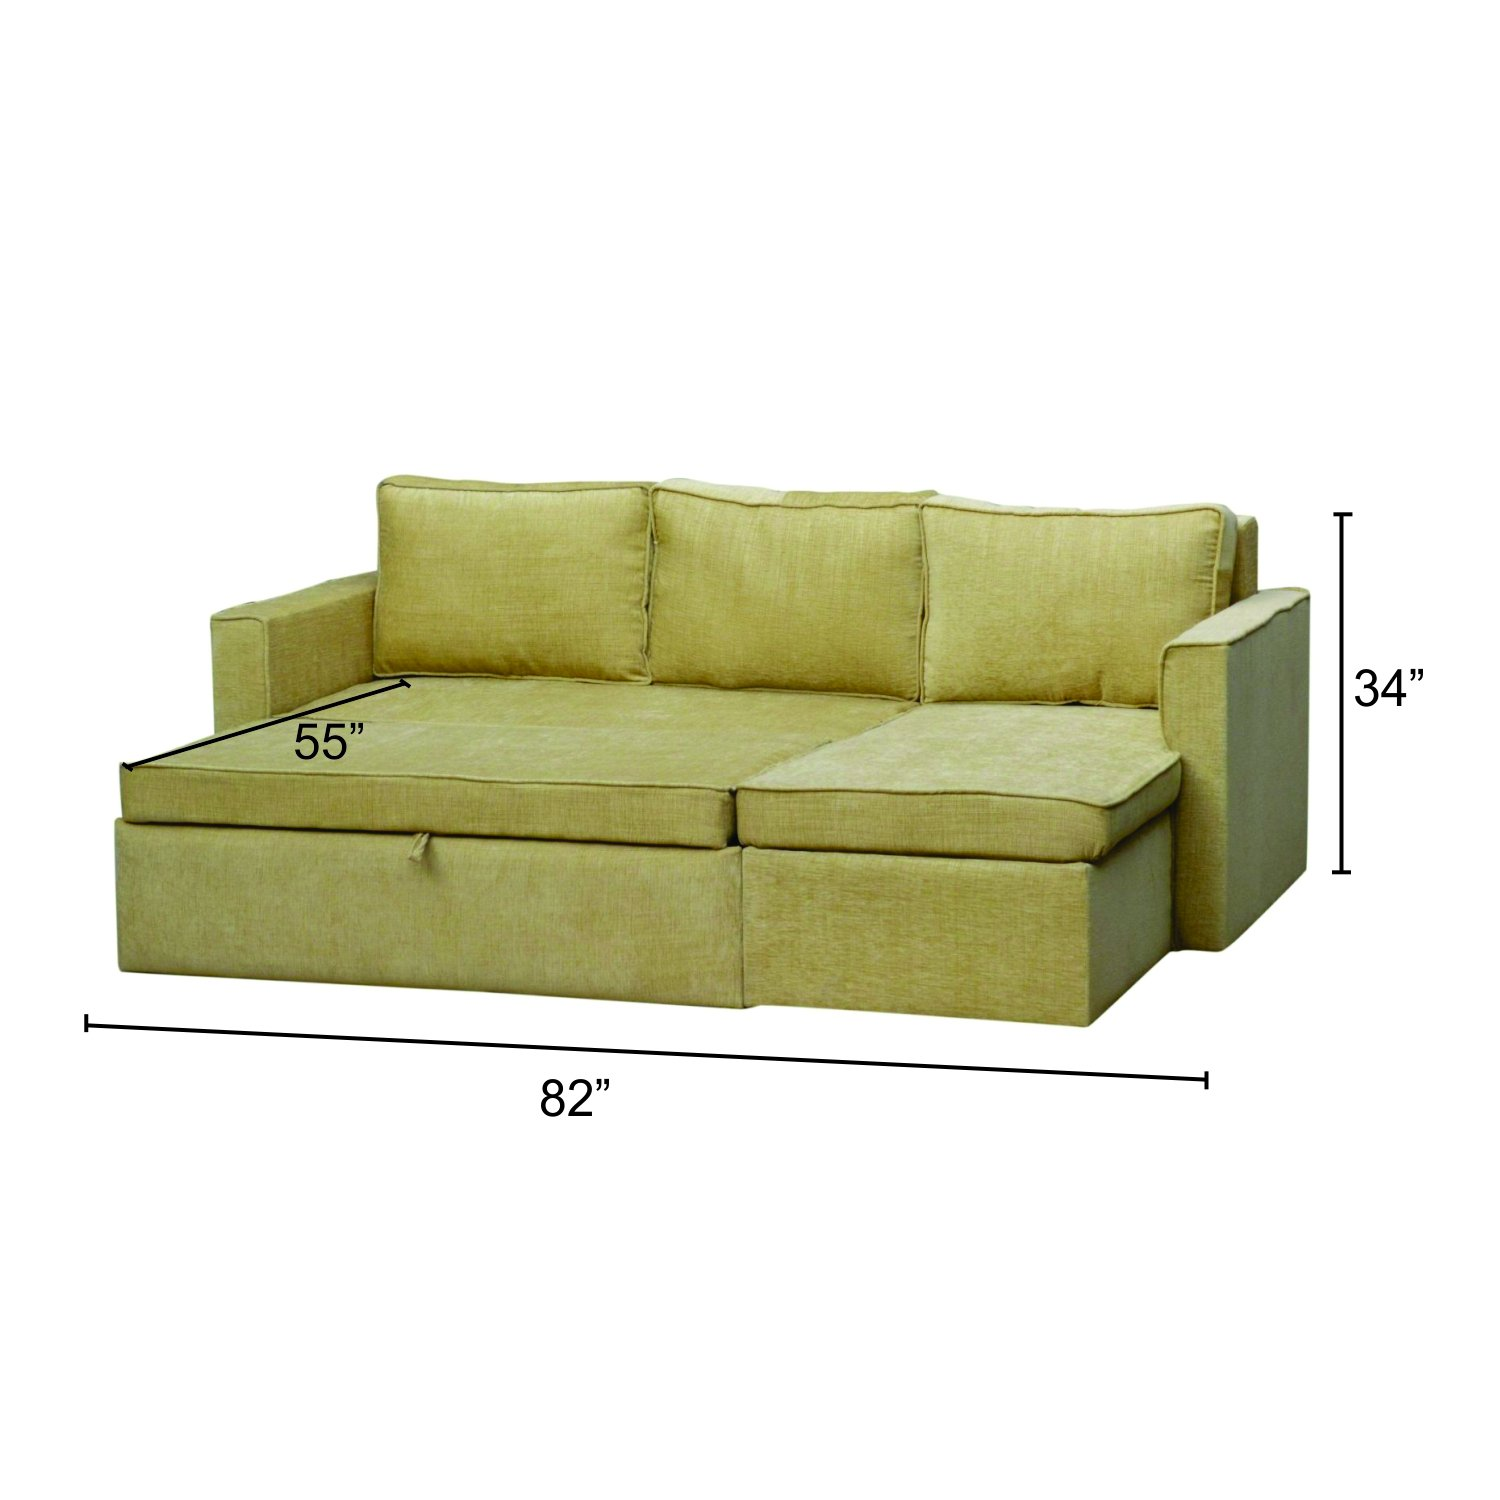 Mubell Weston Wiese L Shape Sofa Cum Bed Sectional 7 Feet Wide